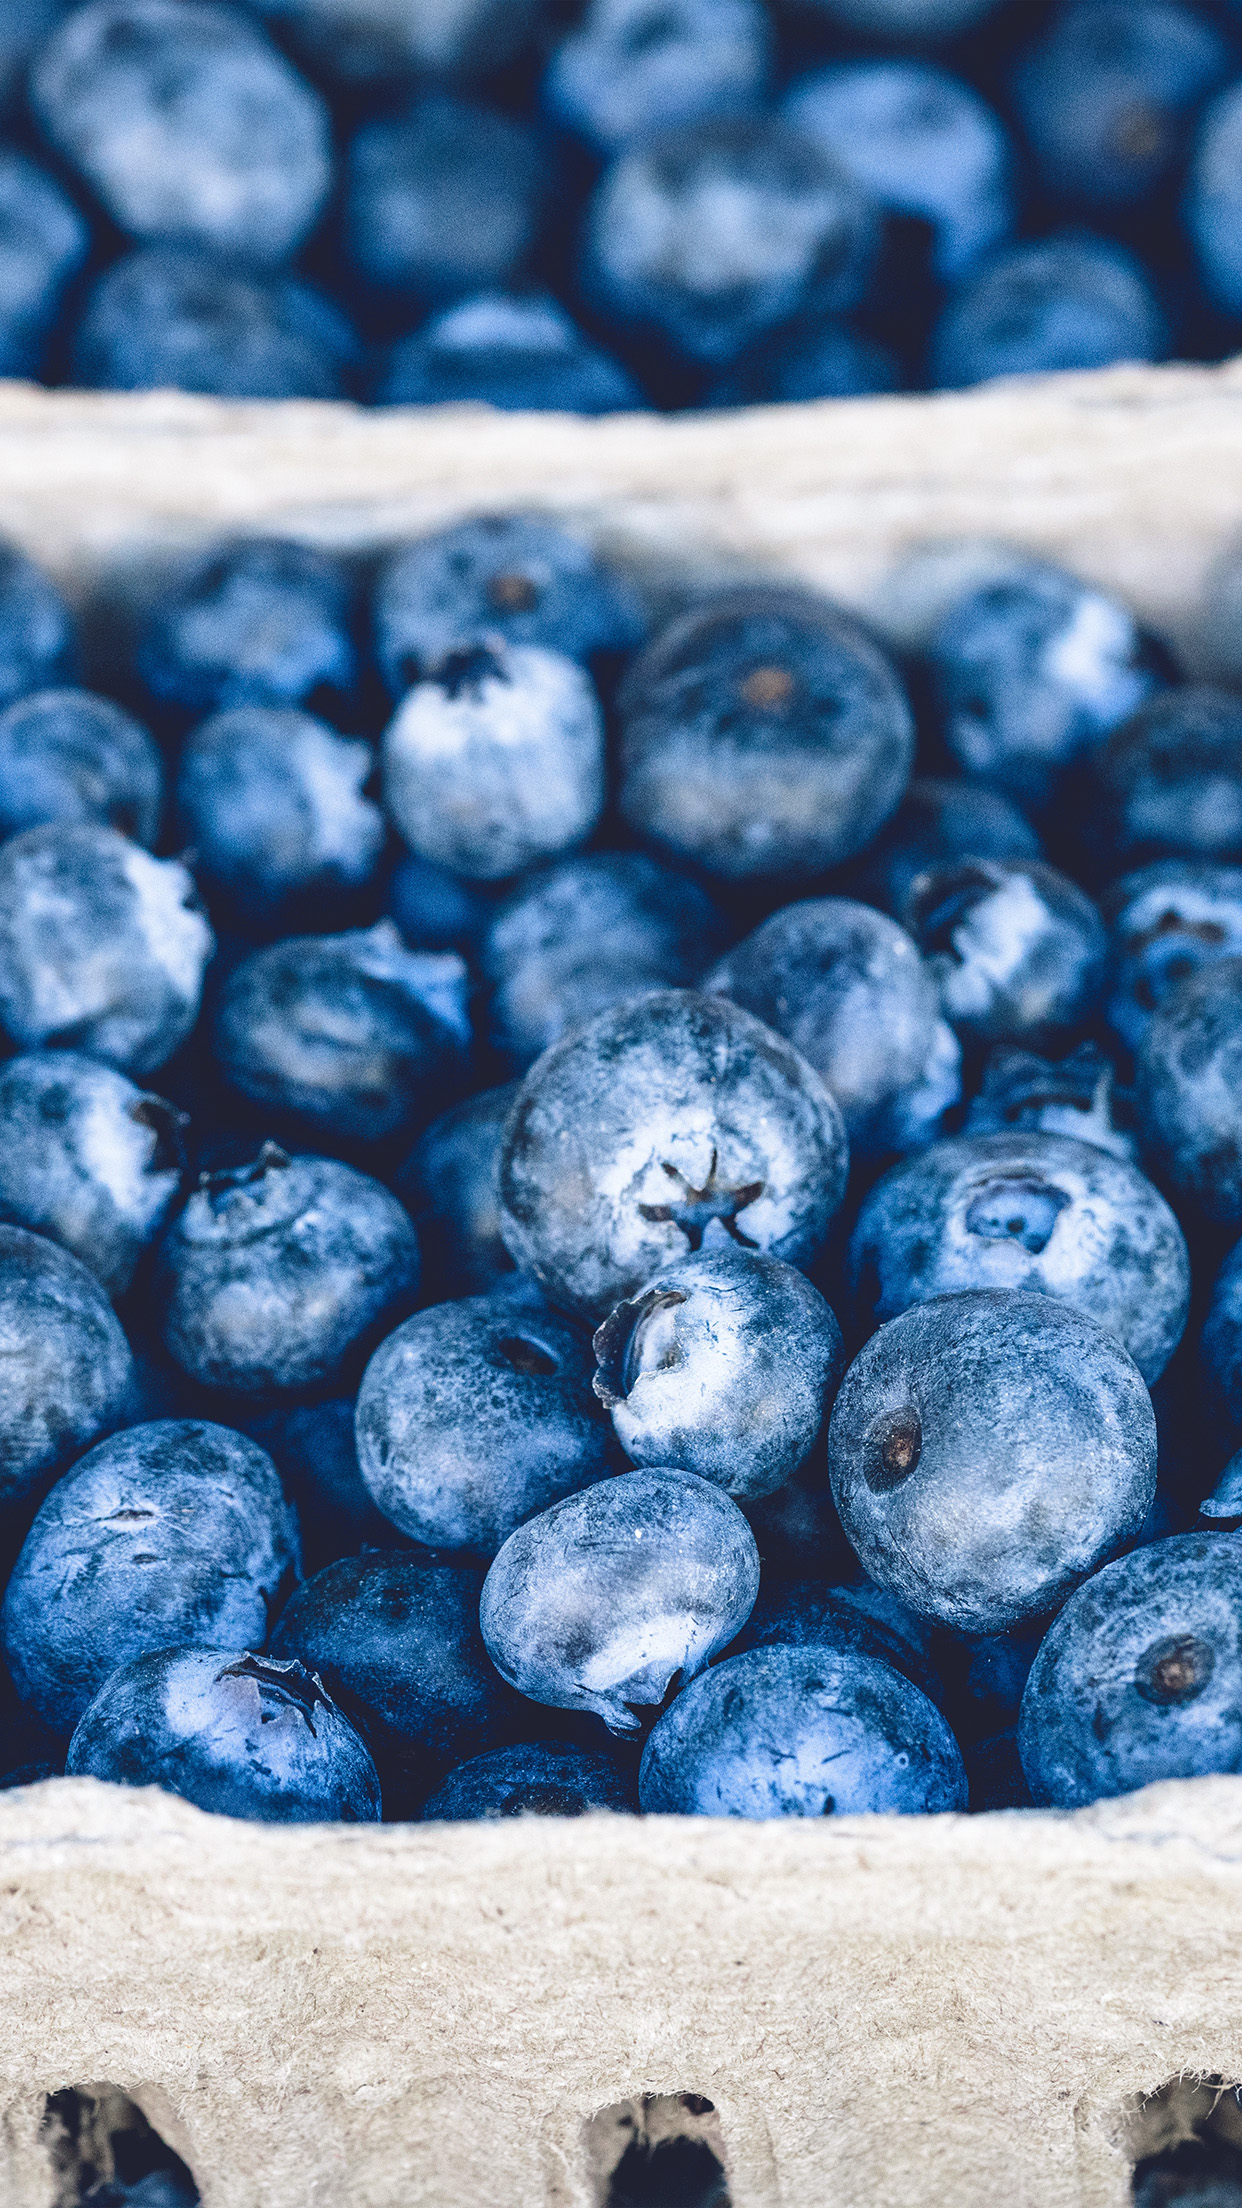 Blueberry Mart Fruit Nature Eat Food Android wallpaper